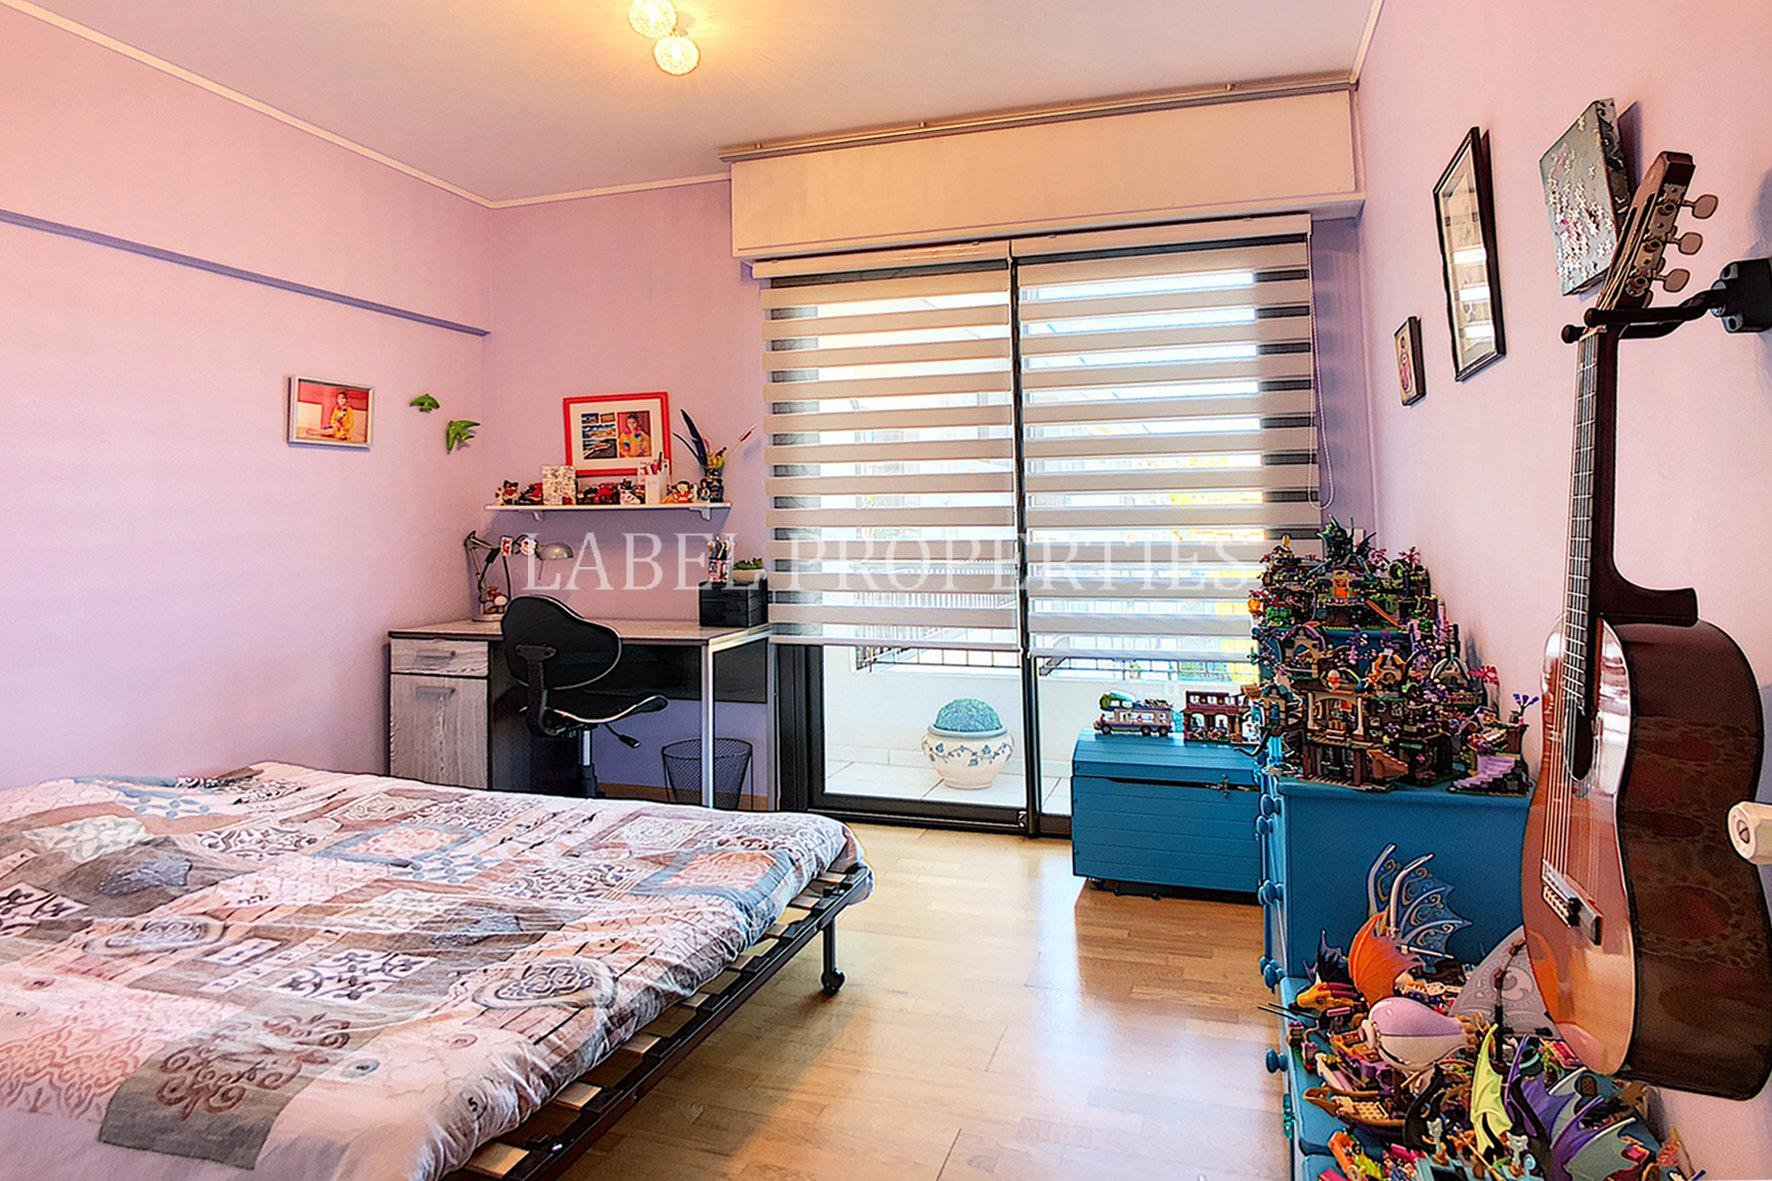 2 bedrooms apartment in perfect condition